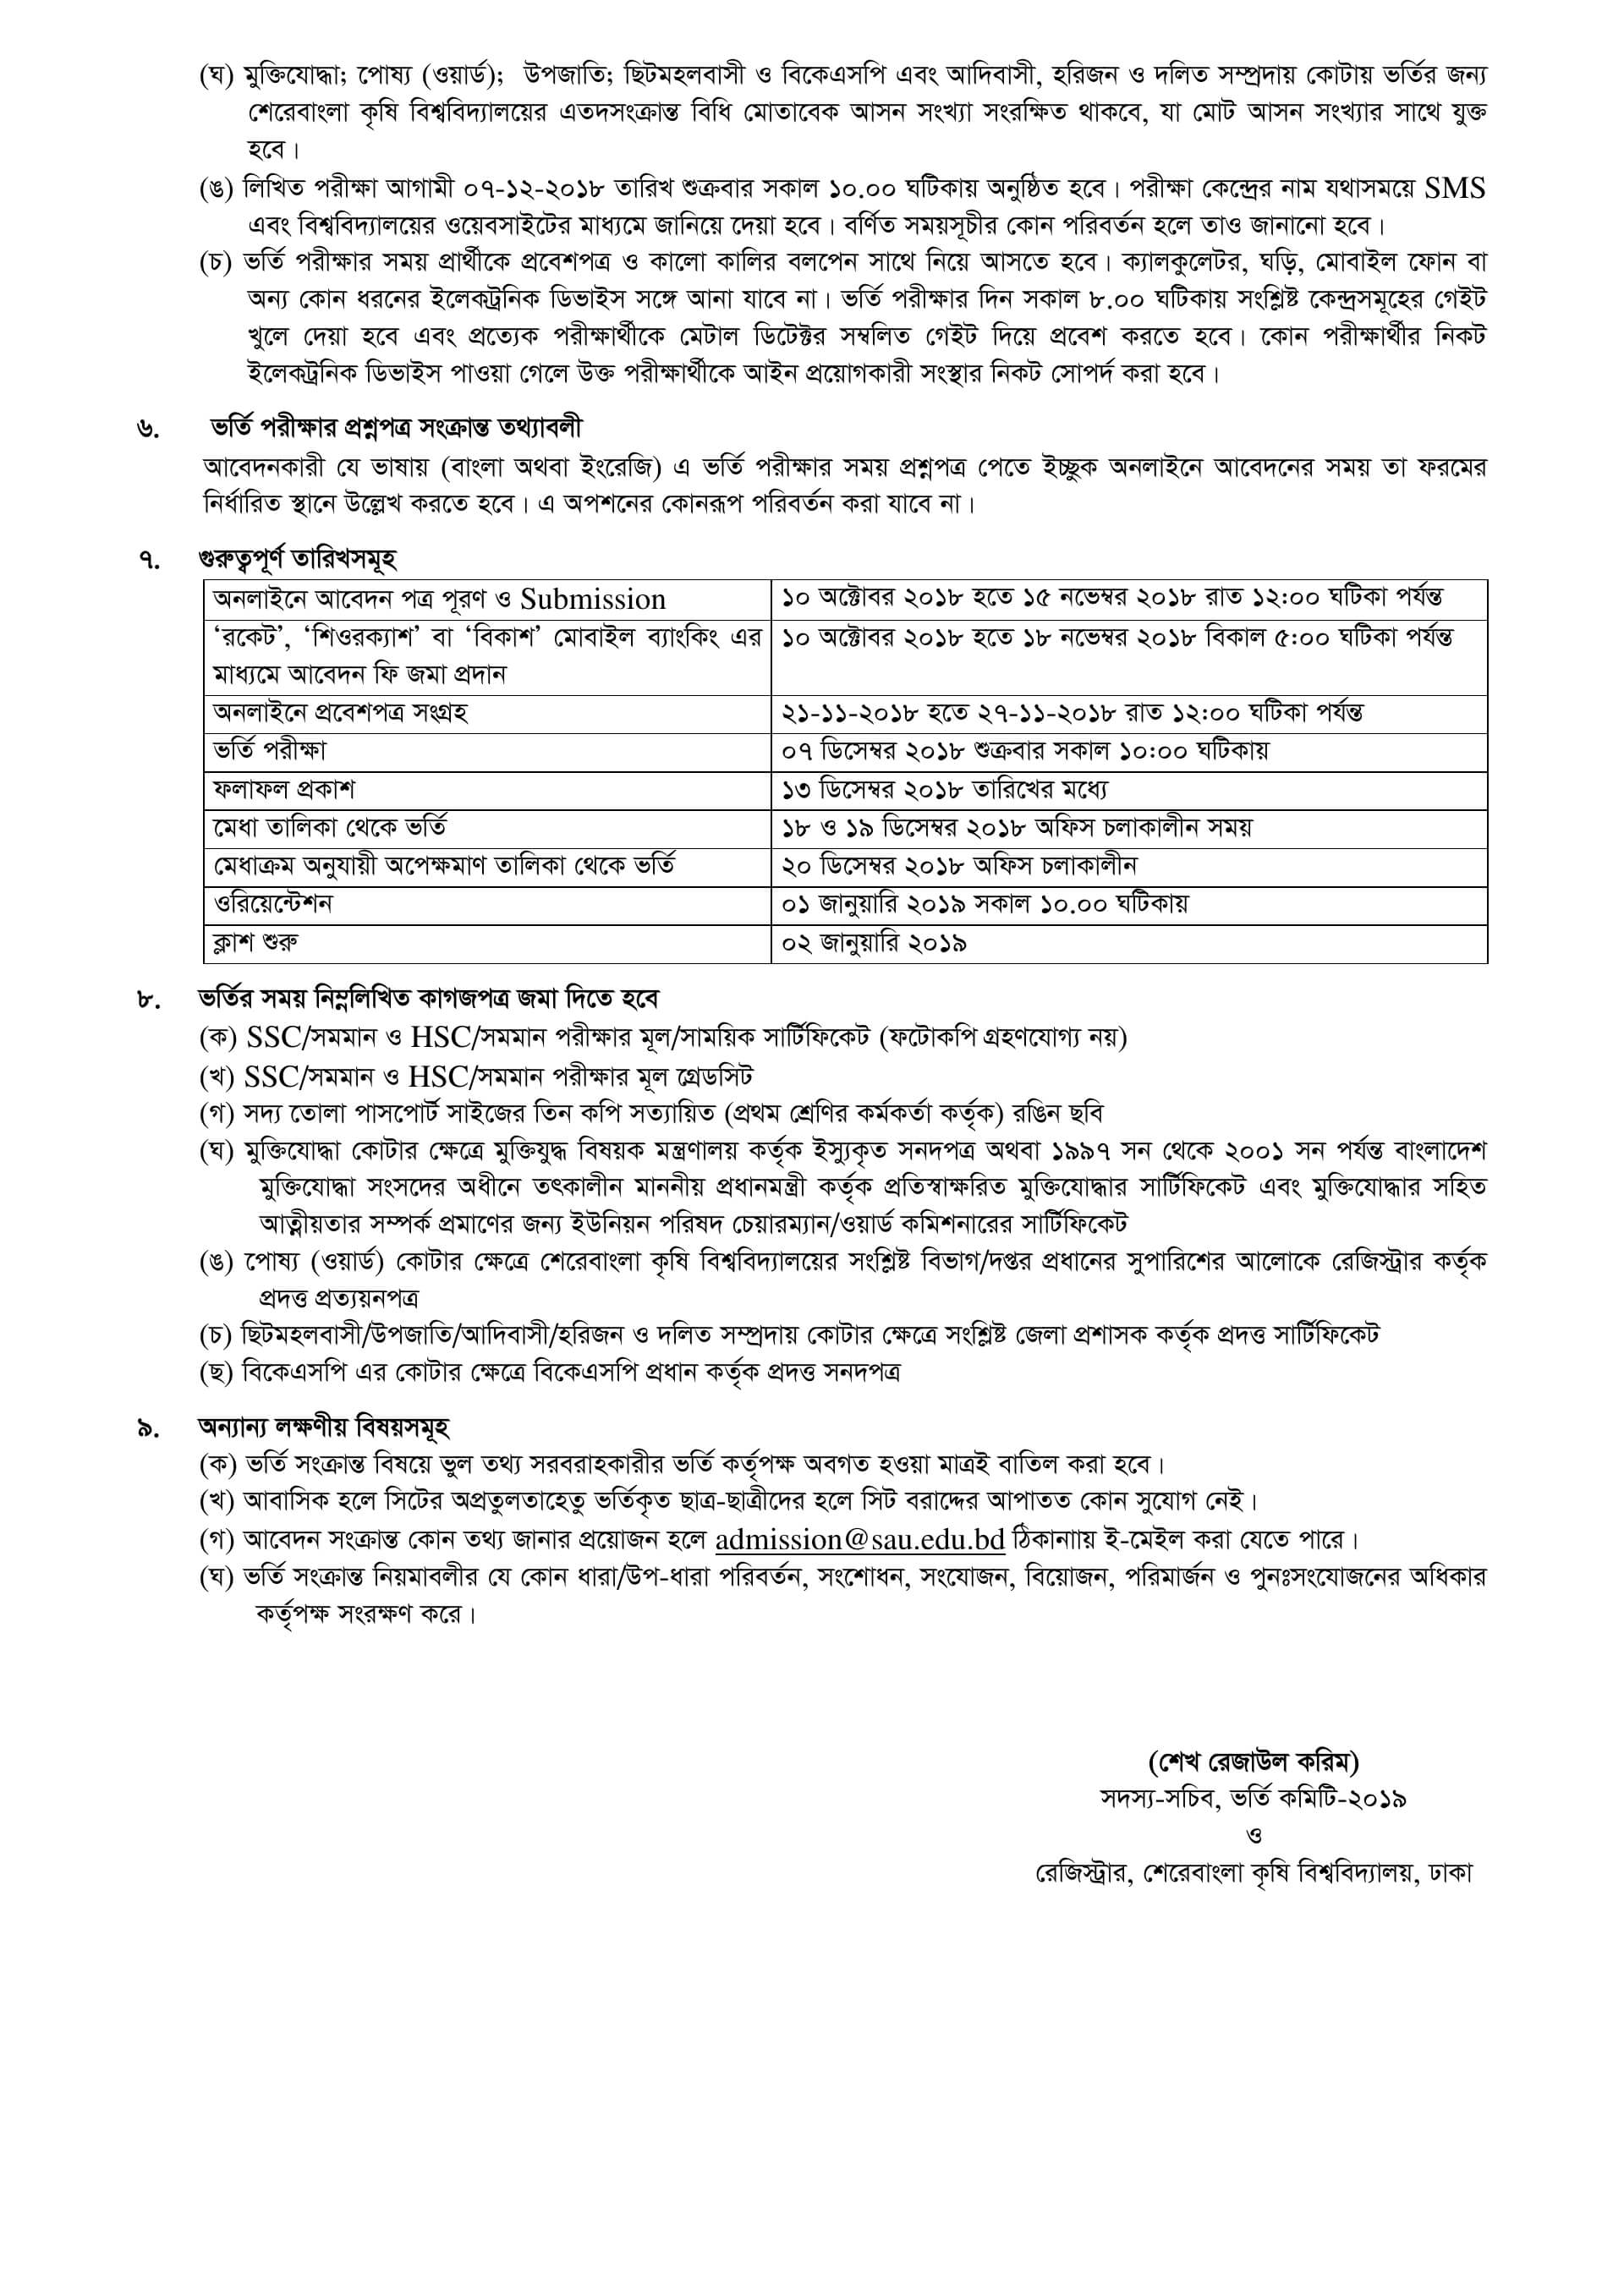 Sher-E-Bangla Agricultural University Admission Circular-1